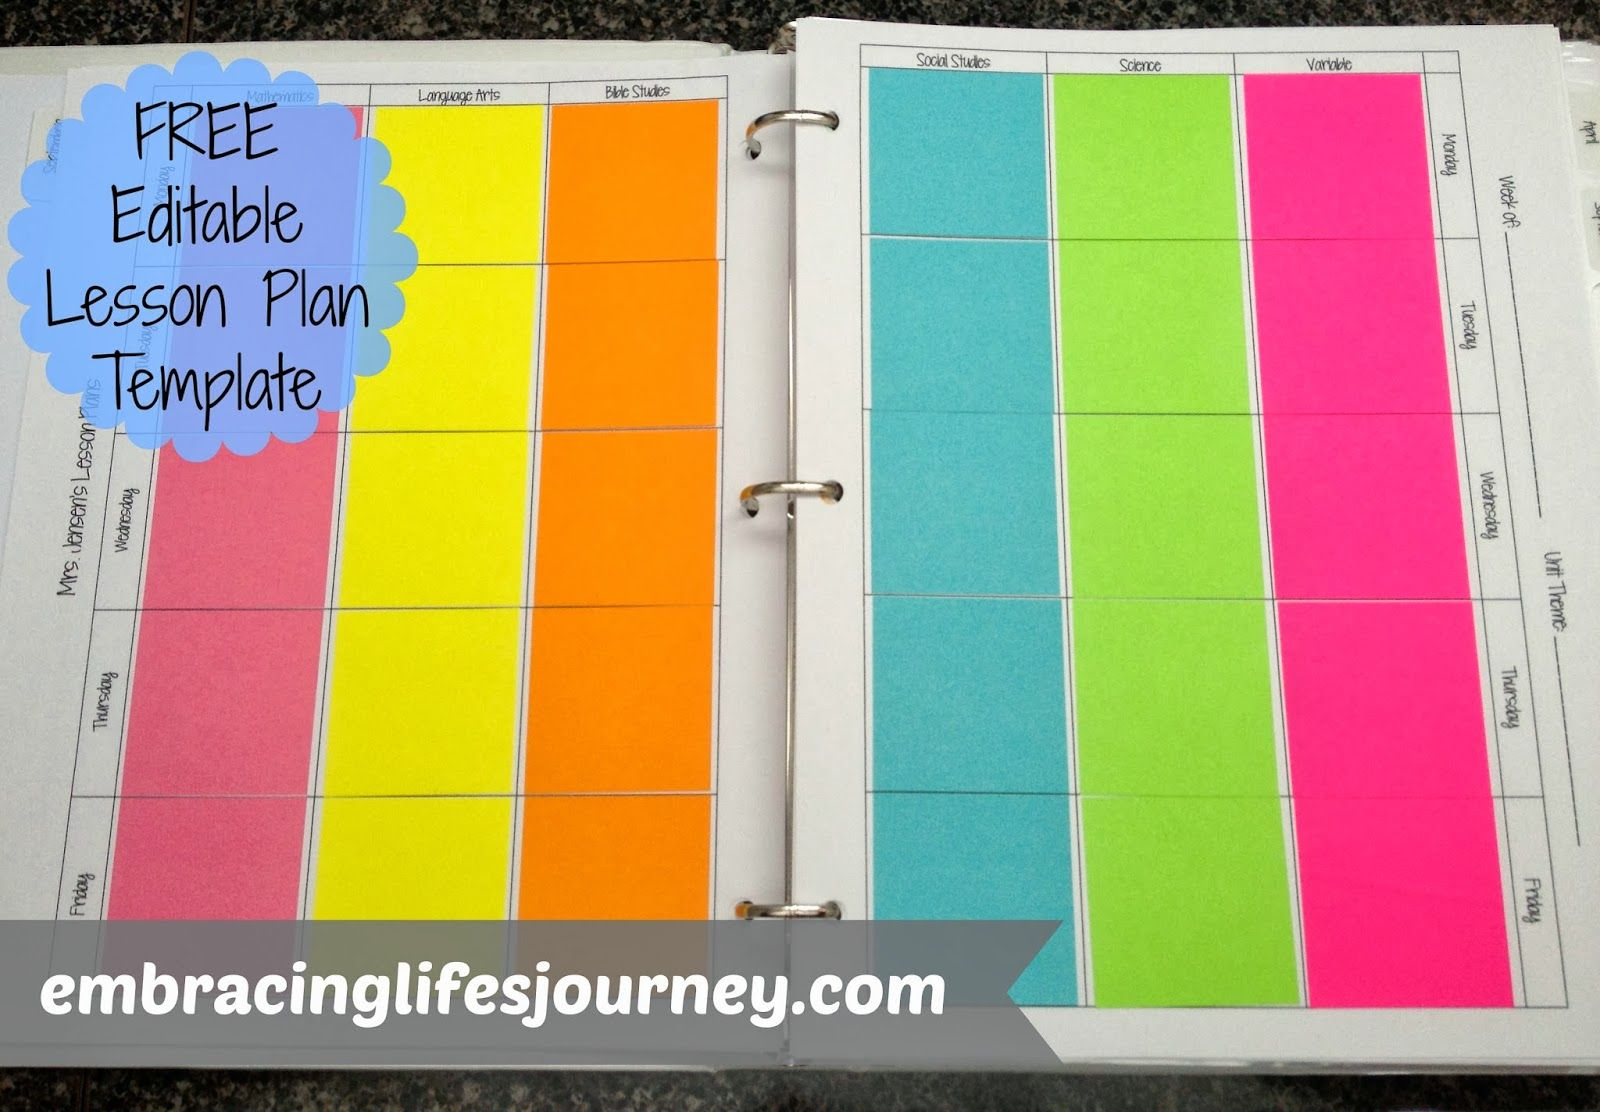 image about Editable Post It Note Template identified as Embracing Lifes Excursion: Totally free editable sticky take note lesson